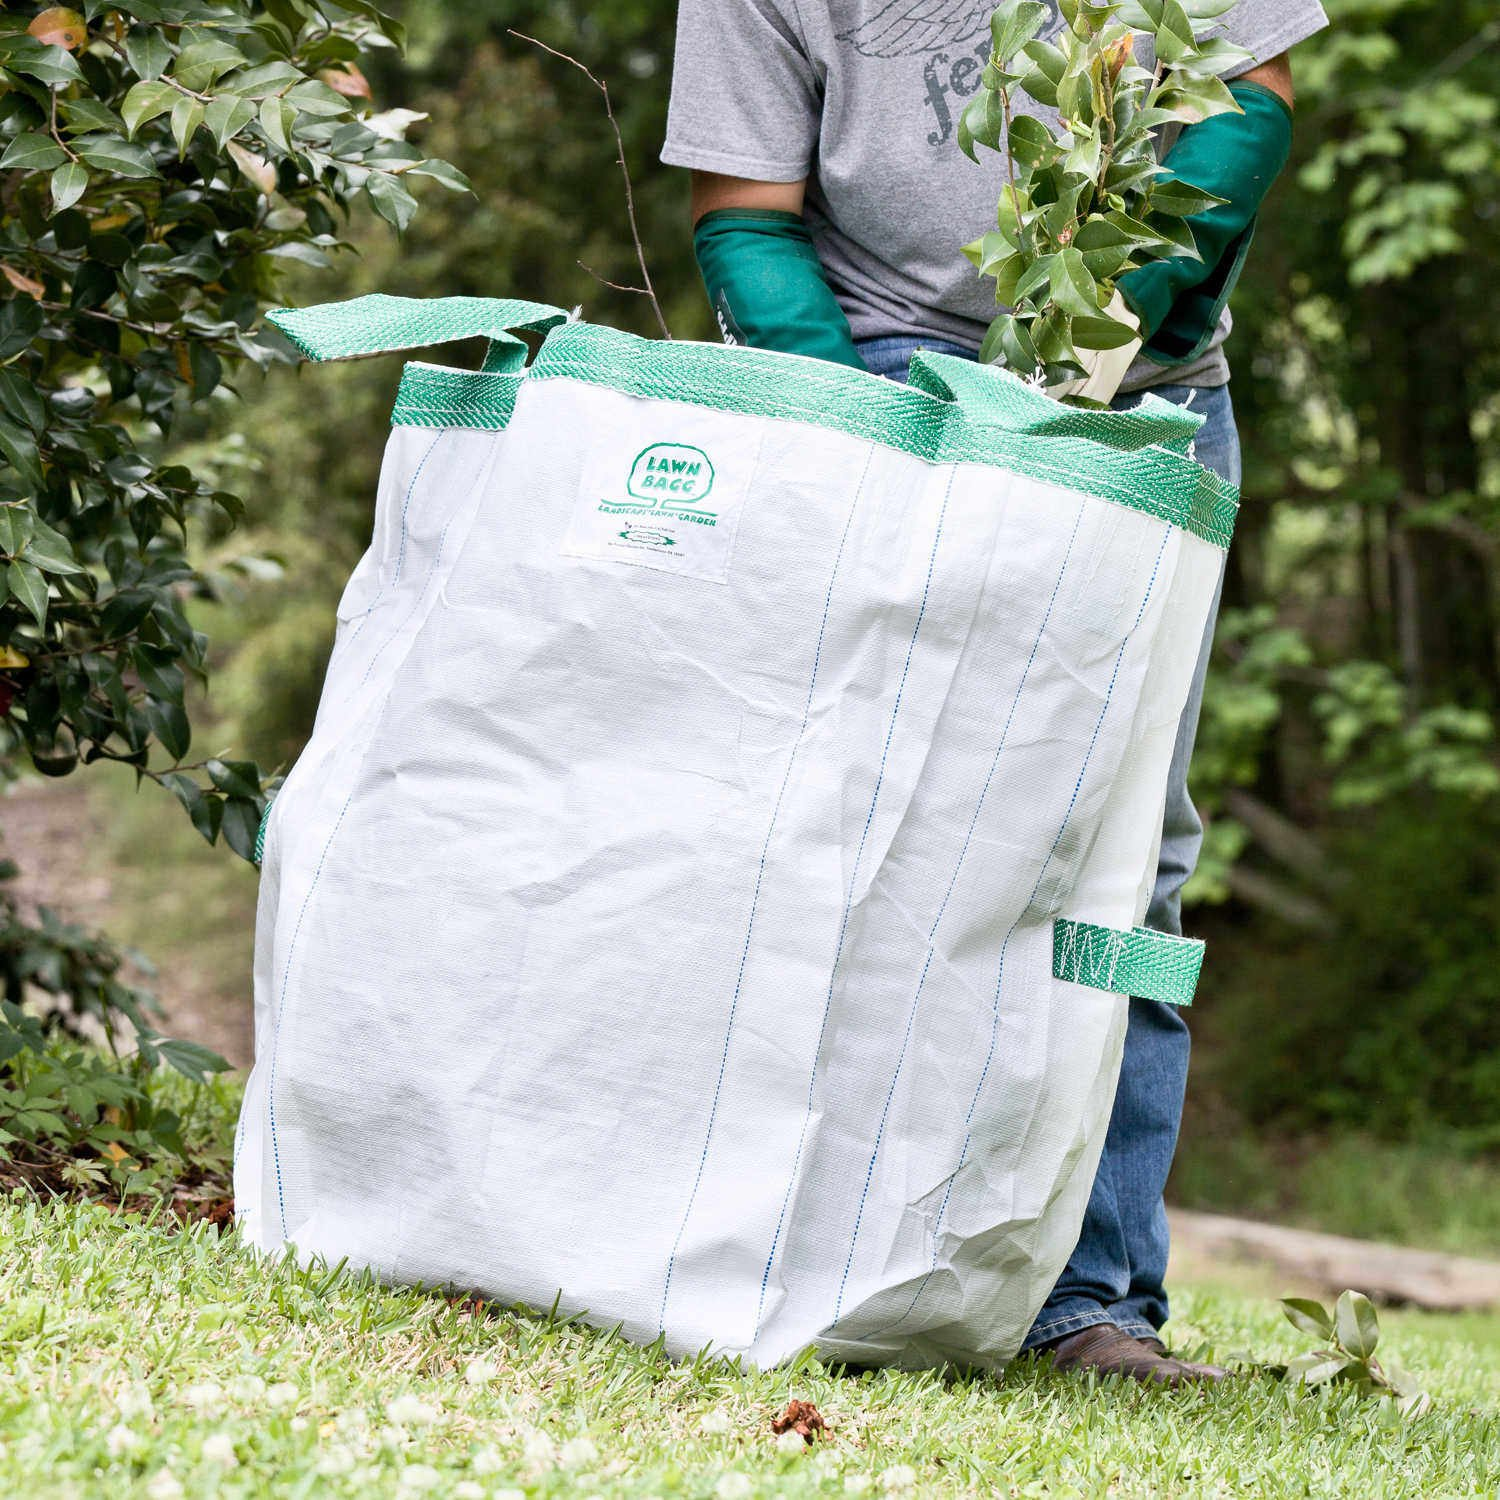 Lawn Bagg 10-Cubic-Foot Capacity (75 Gallons), 24 x 24 x 30-inches by A.M. Leonard